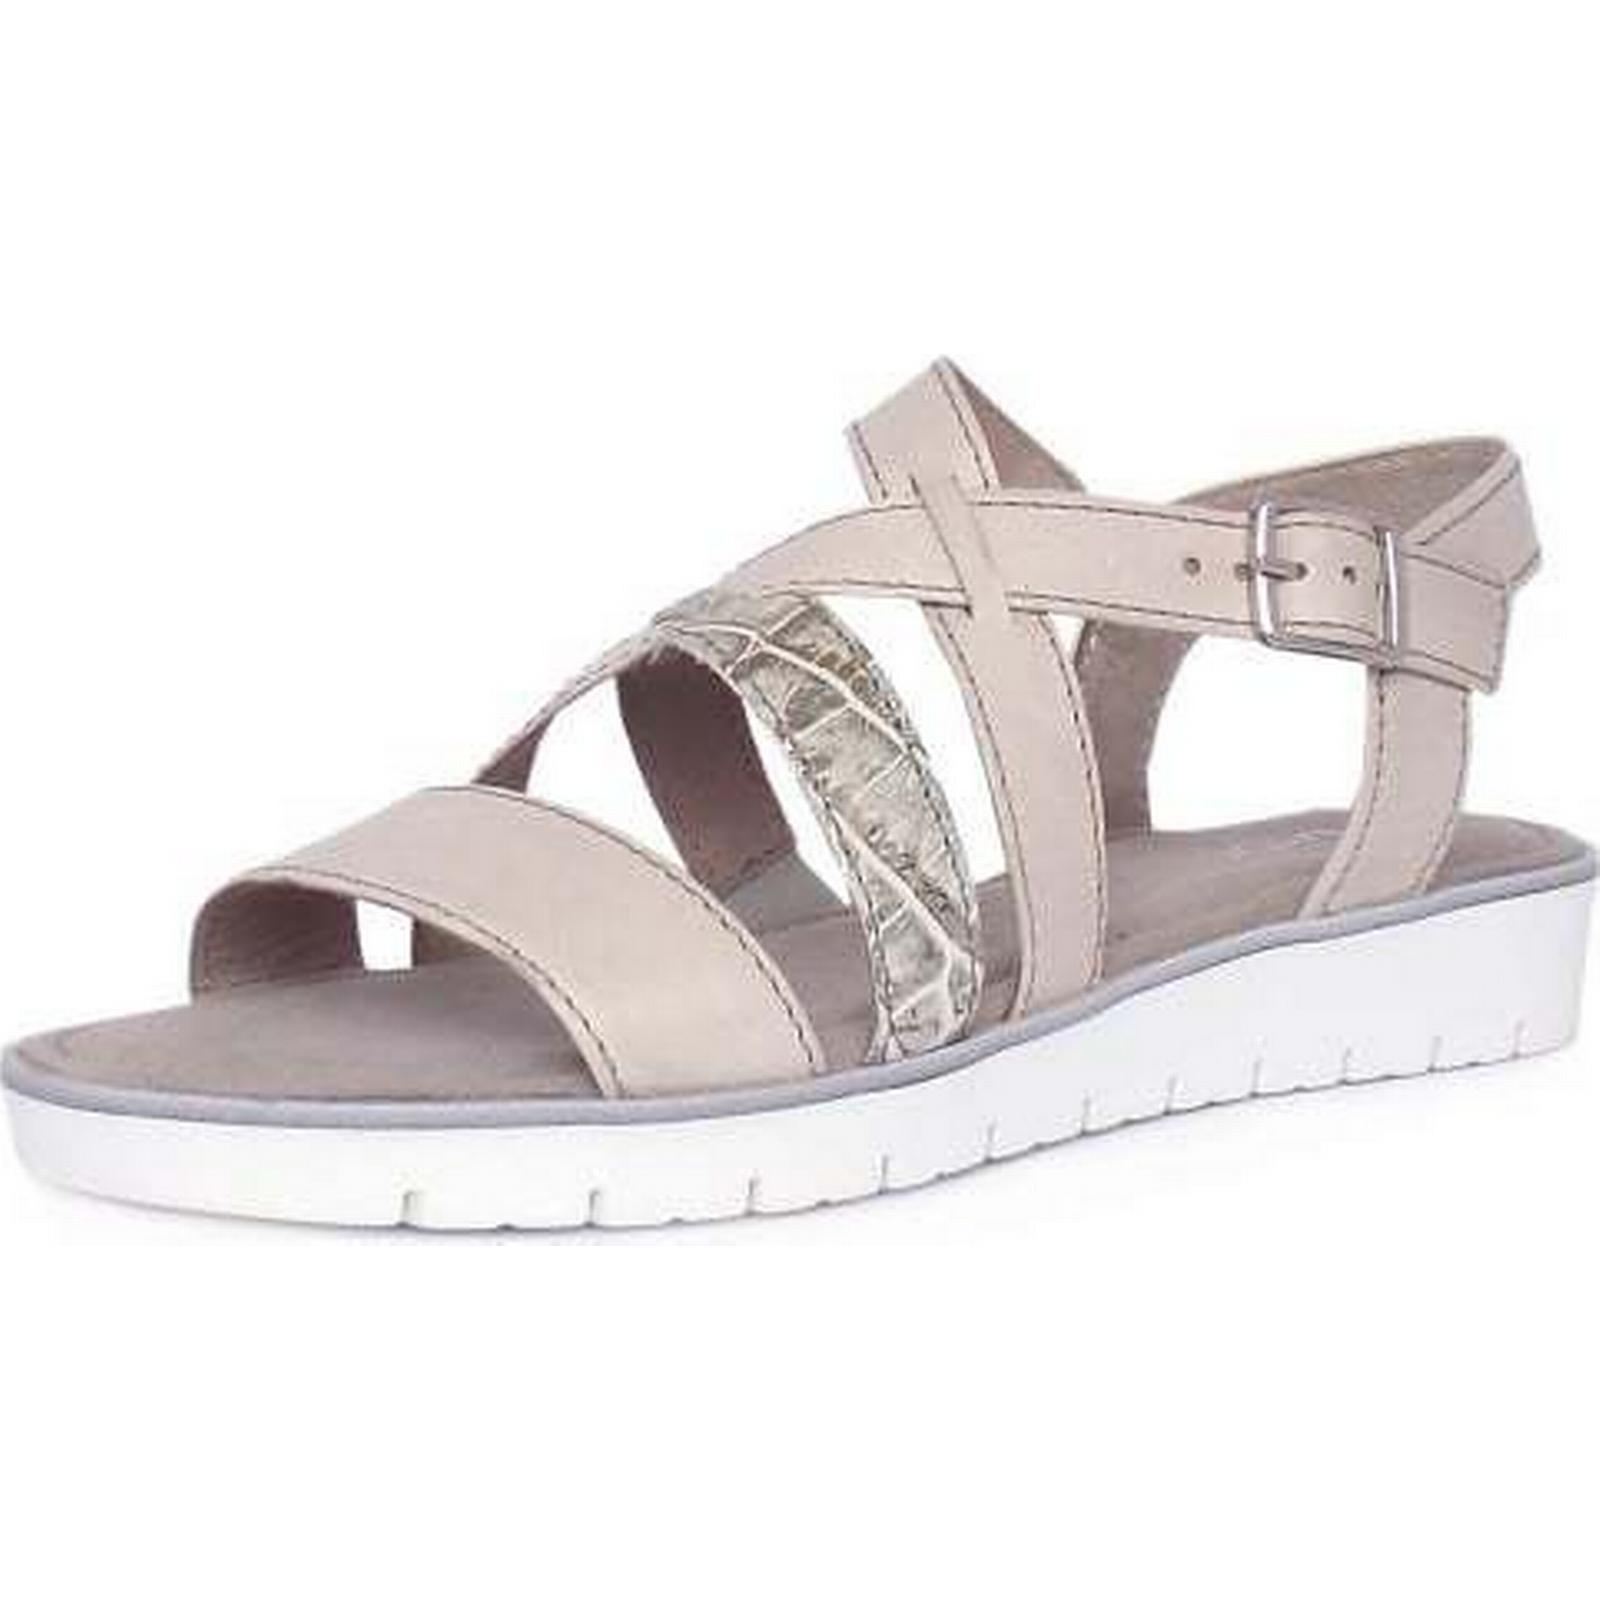 Gabor DONATELLA GABOR LADIES SANDALS Size: 6, STONE Colour: STONE 6, a4b600